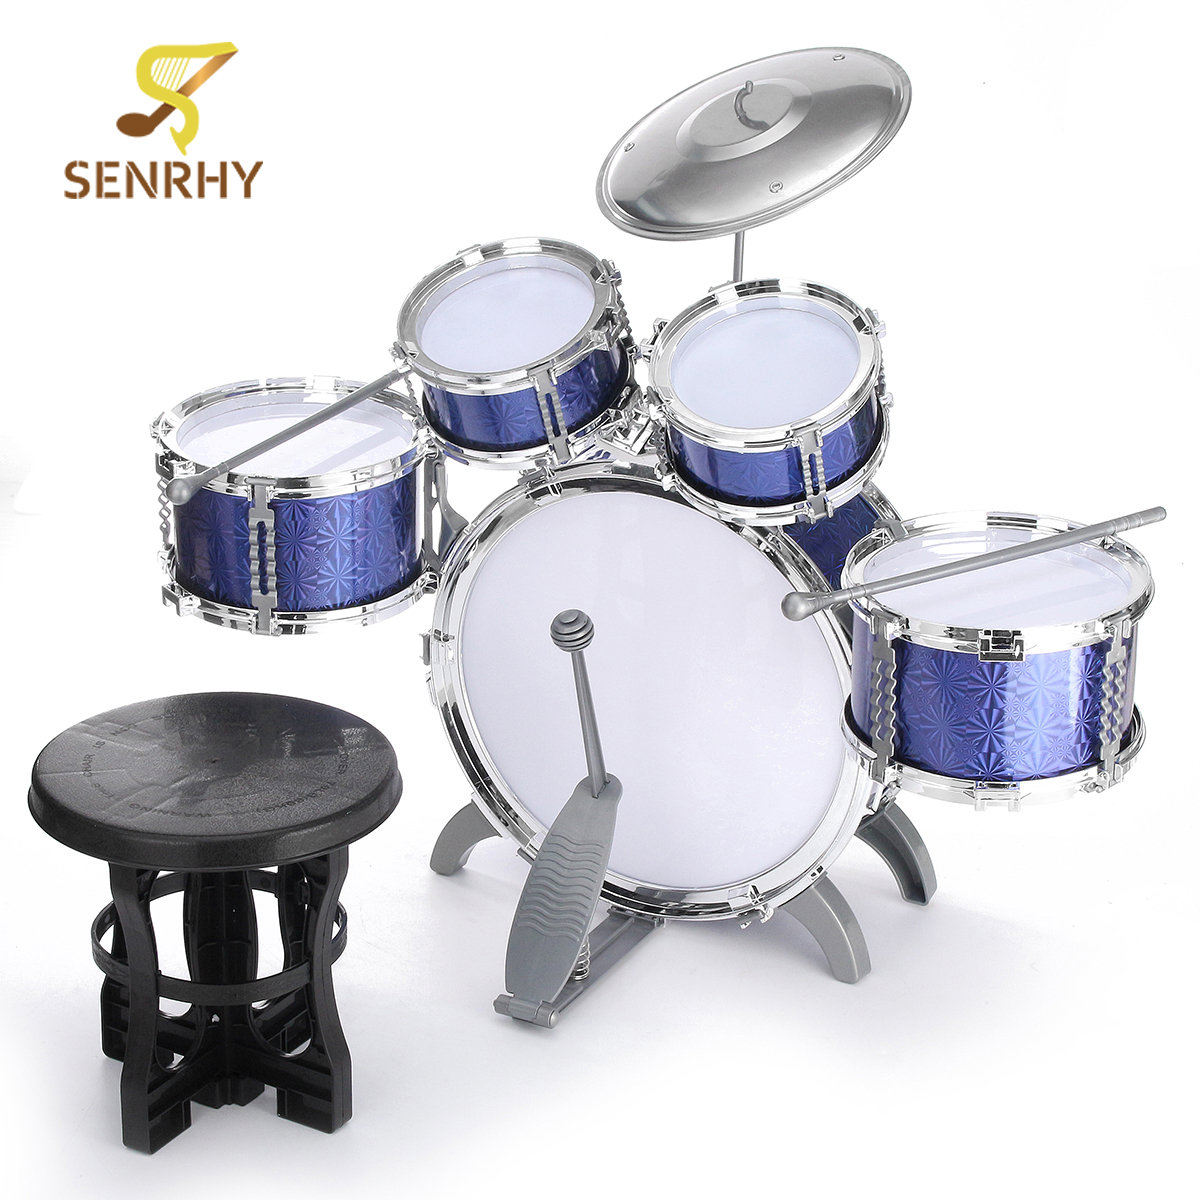 senrhy-blue-fontbdrum-b-font-fontbset-b-font-kit-children-kid-musical-instrument-with-stool-sticks-c